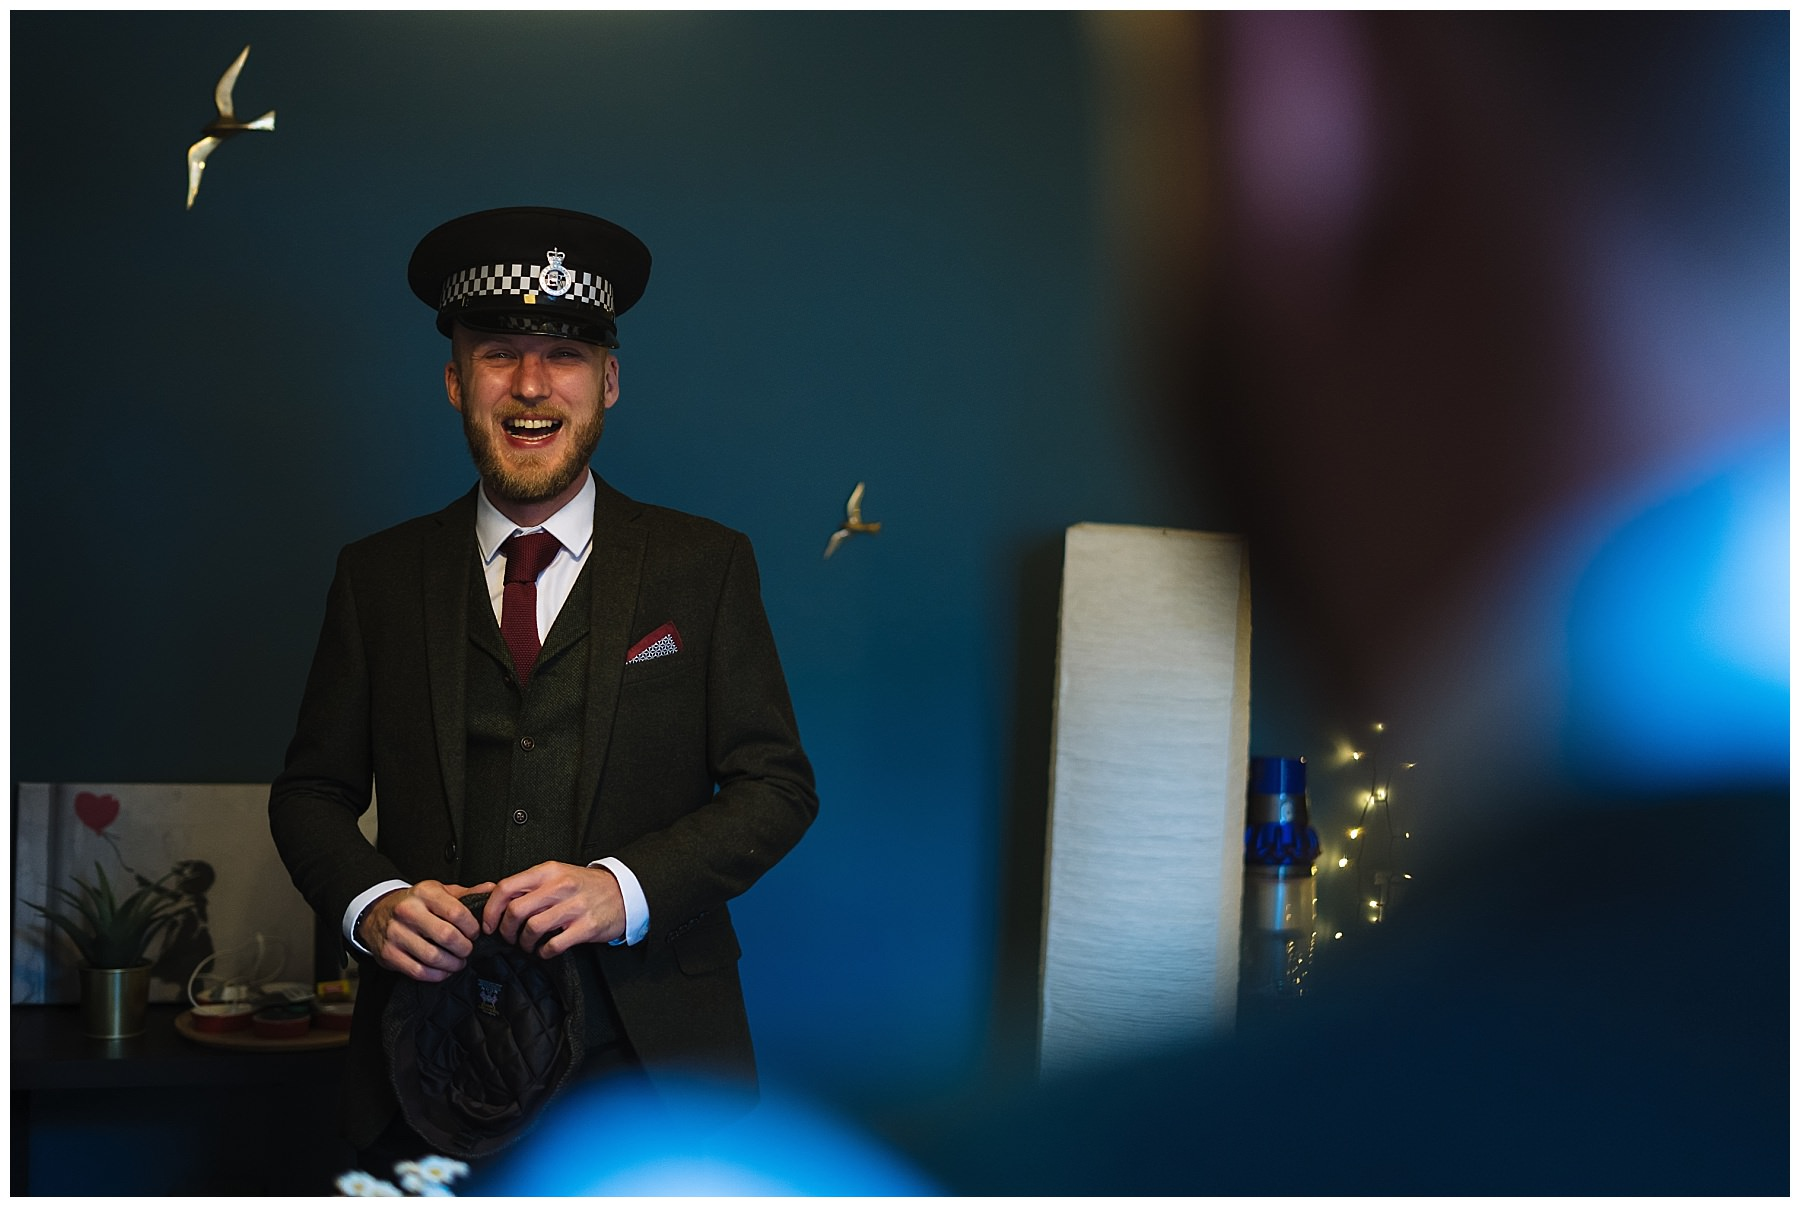 groom laughing wearing police hat